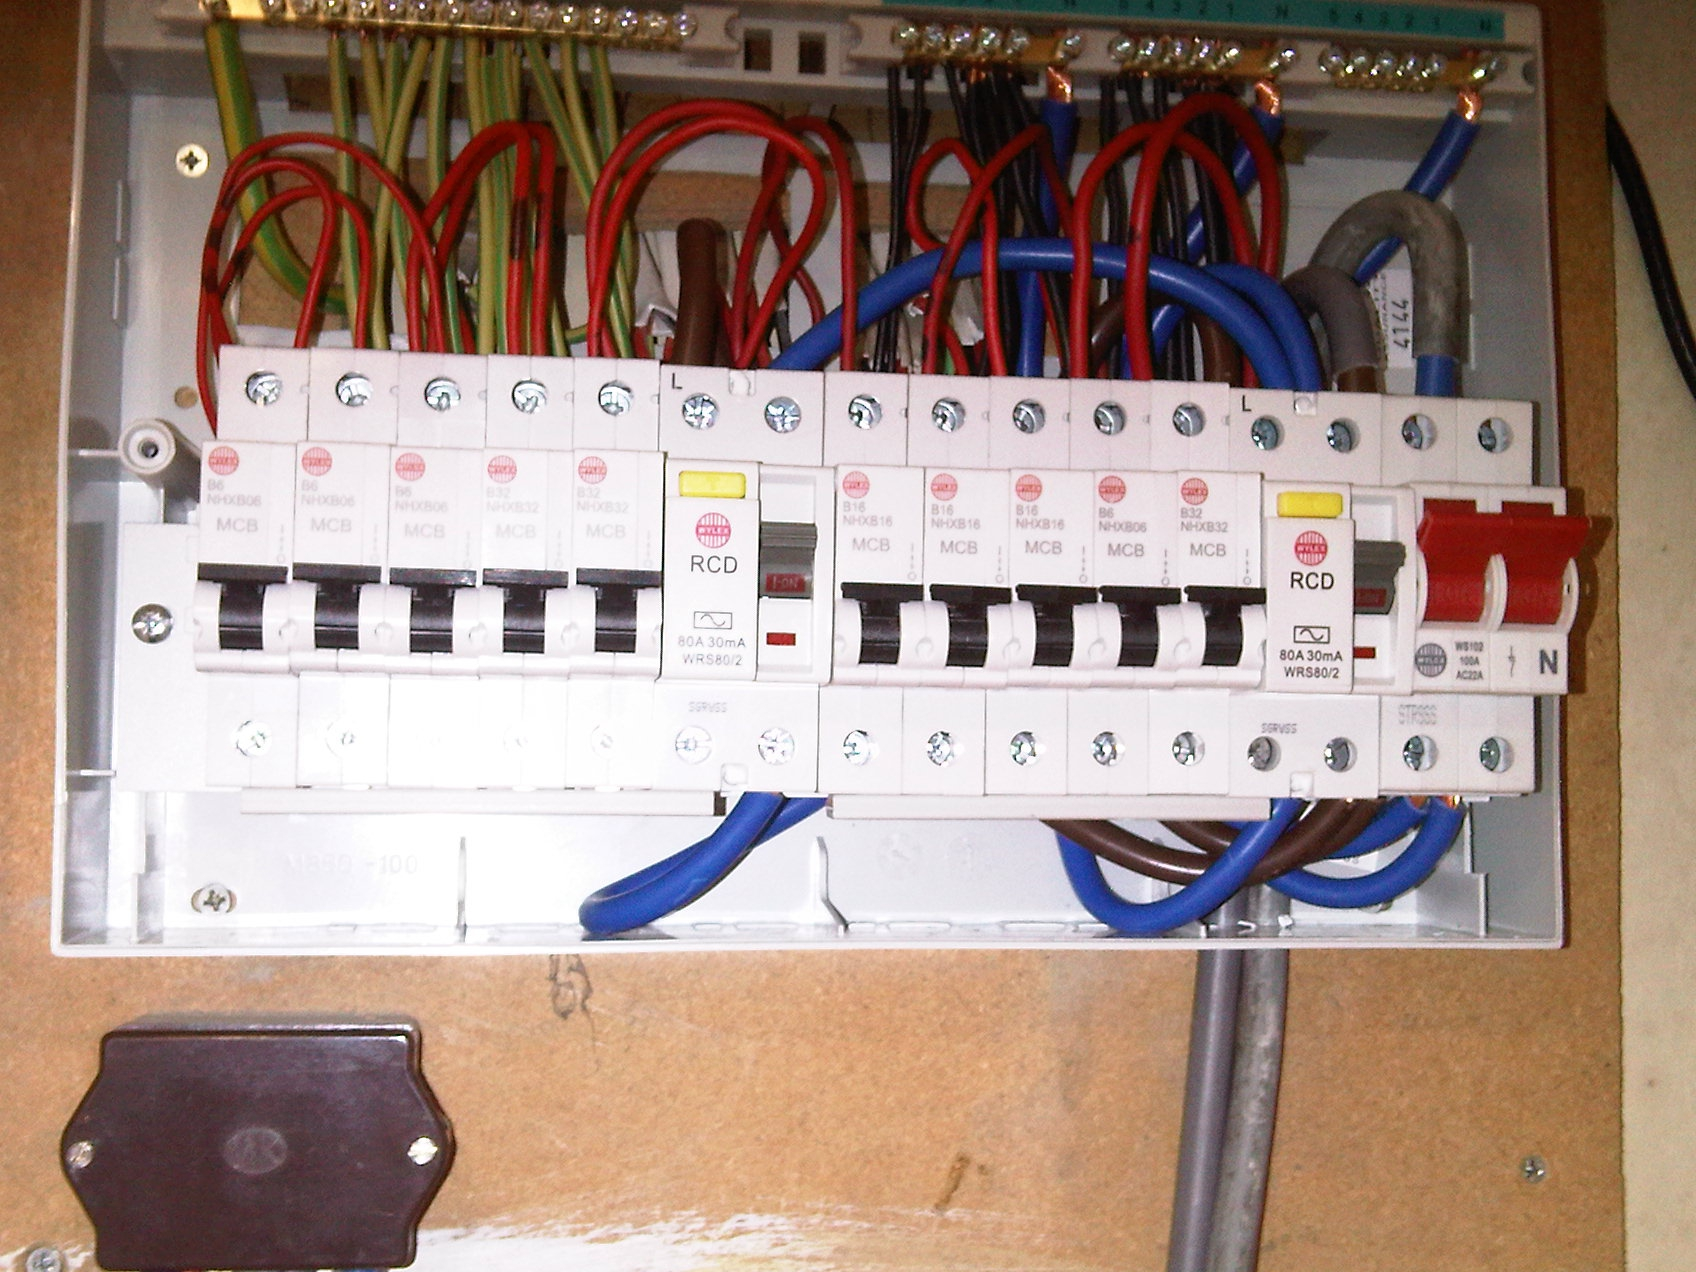 Fusebox 4 uk fuse box tql load board \u2022 wiring diagrams j squared co Electrical Fuse Box Diagram at eliteediting.co